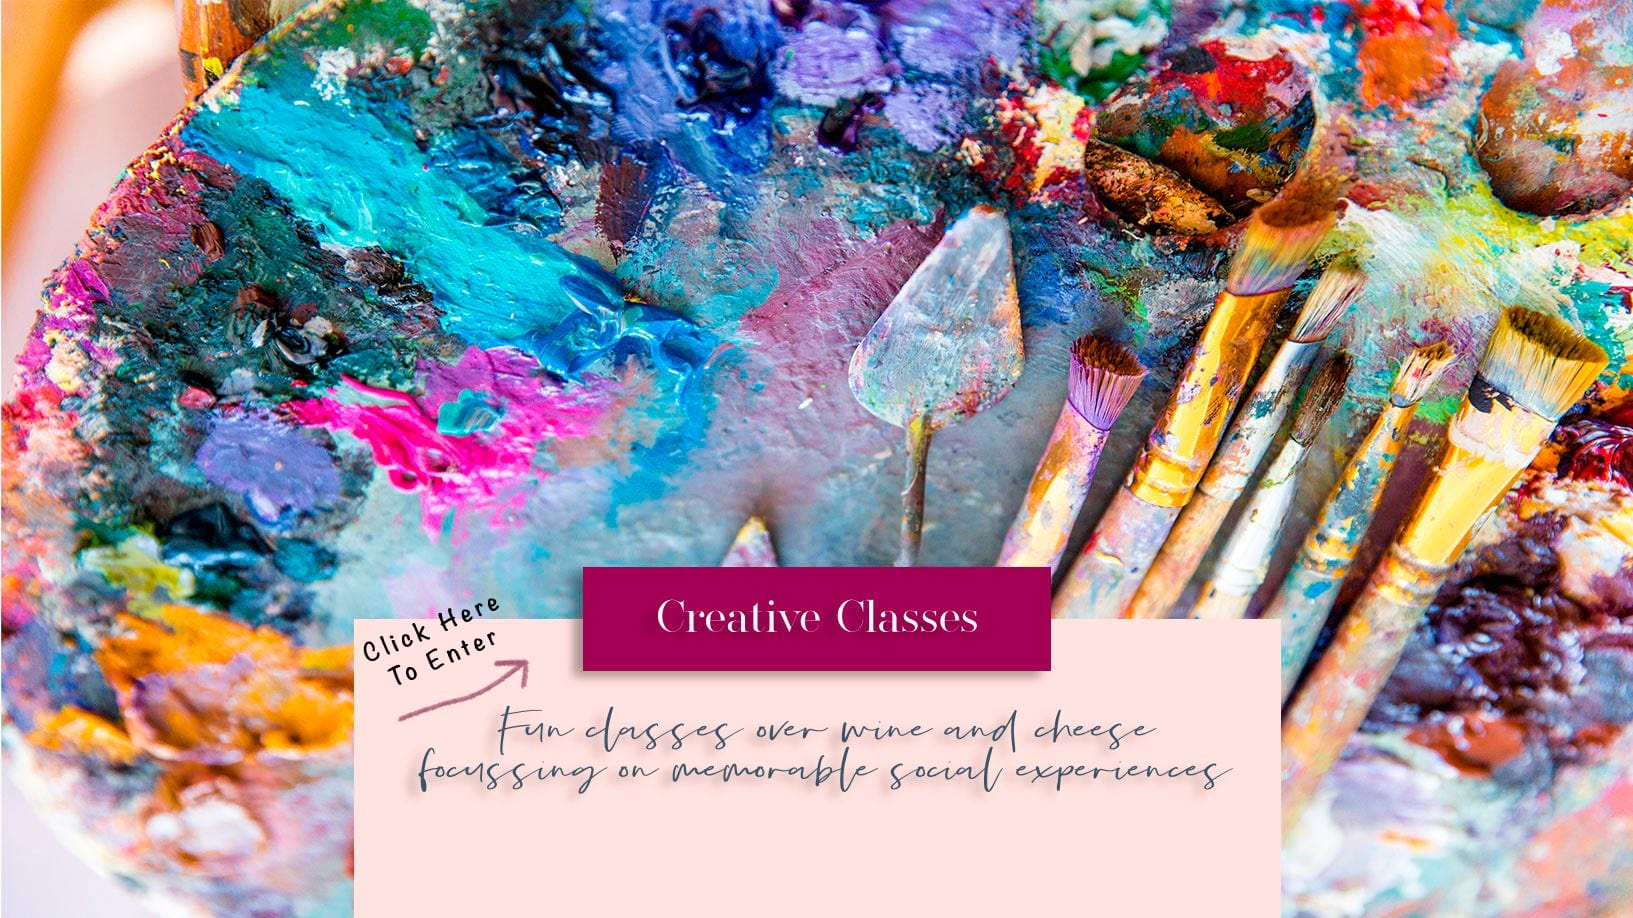 Creative Classes Category Image